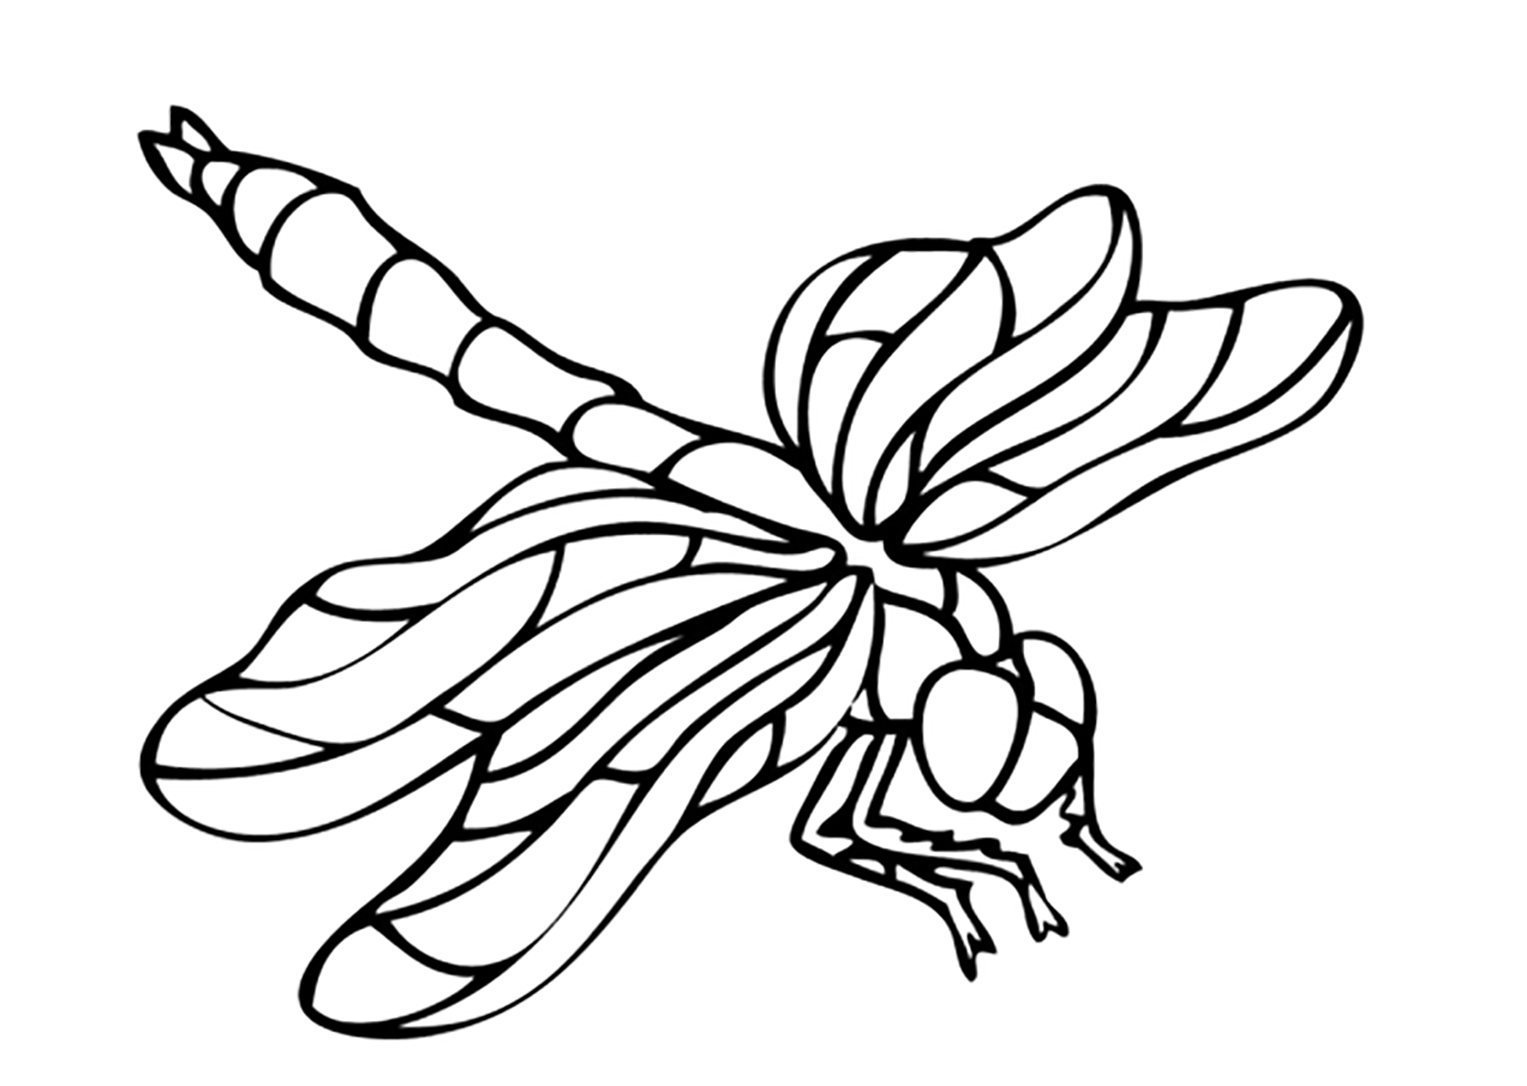 insects coloring sheets insects for kids insects kids coloring pages sheets insects coloring